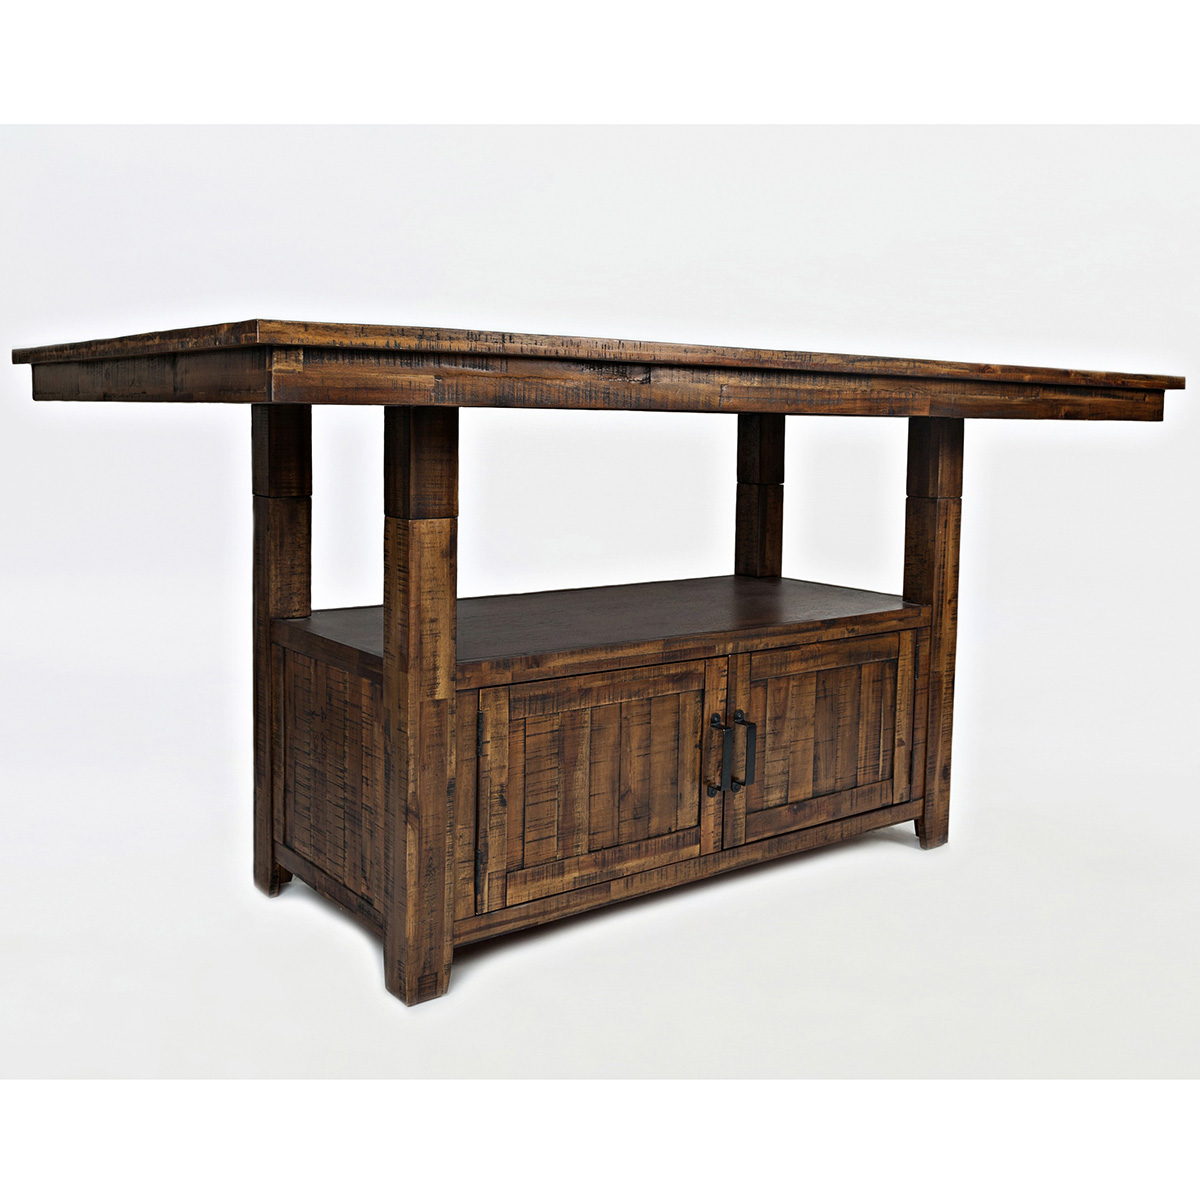 Cannon Valley Dining Table W/ Storage Base In Distressed Acacia